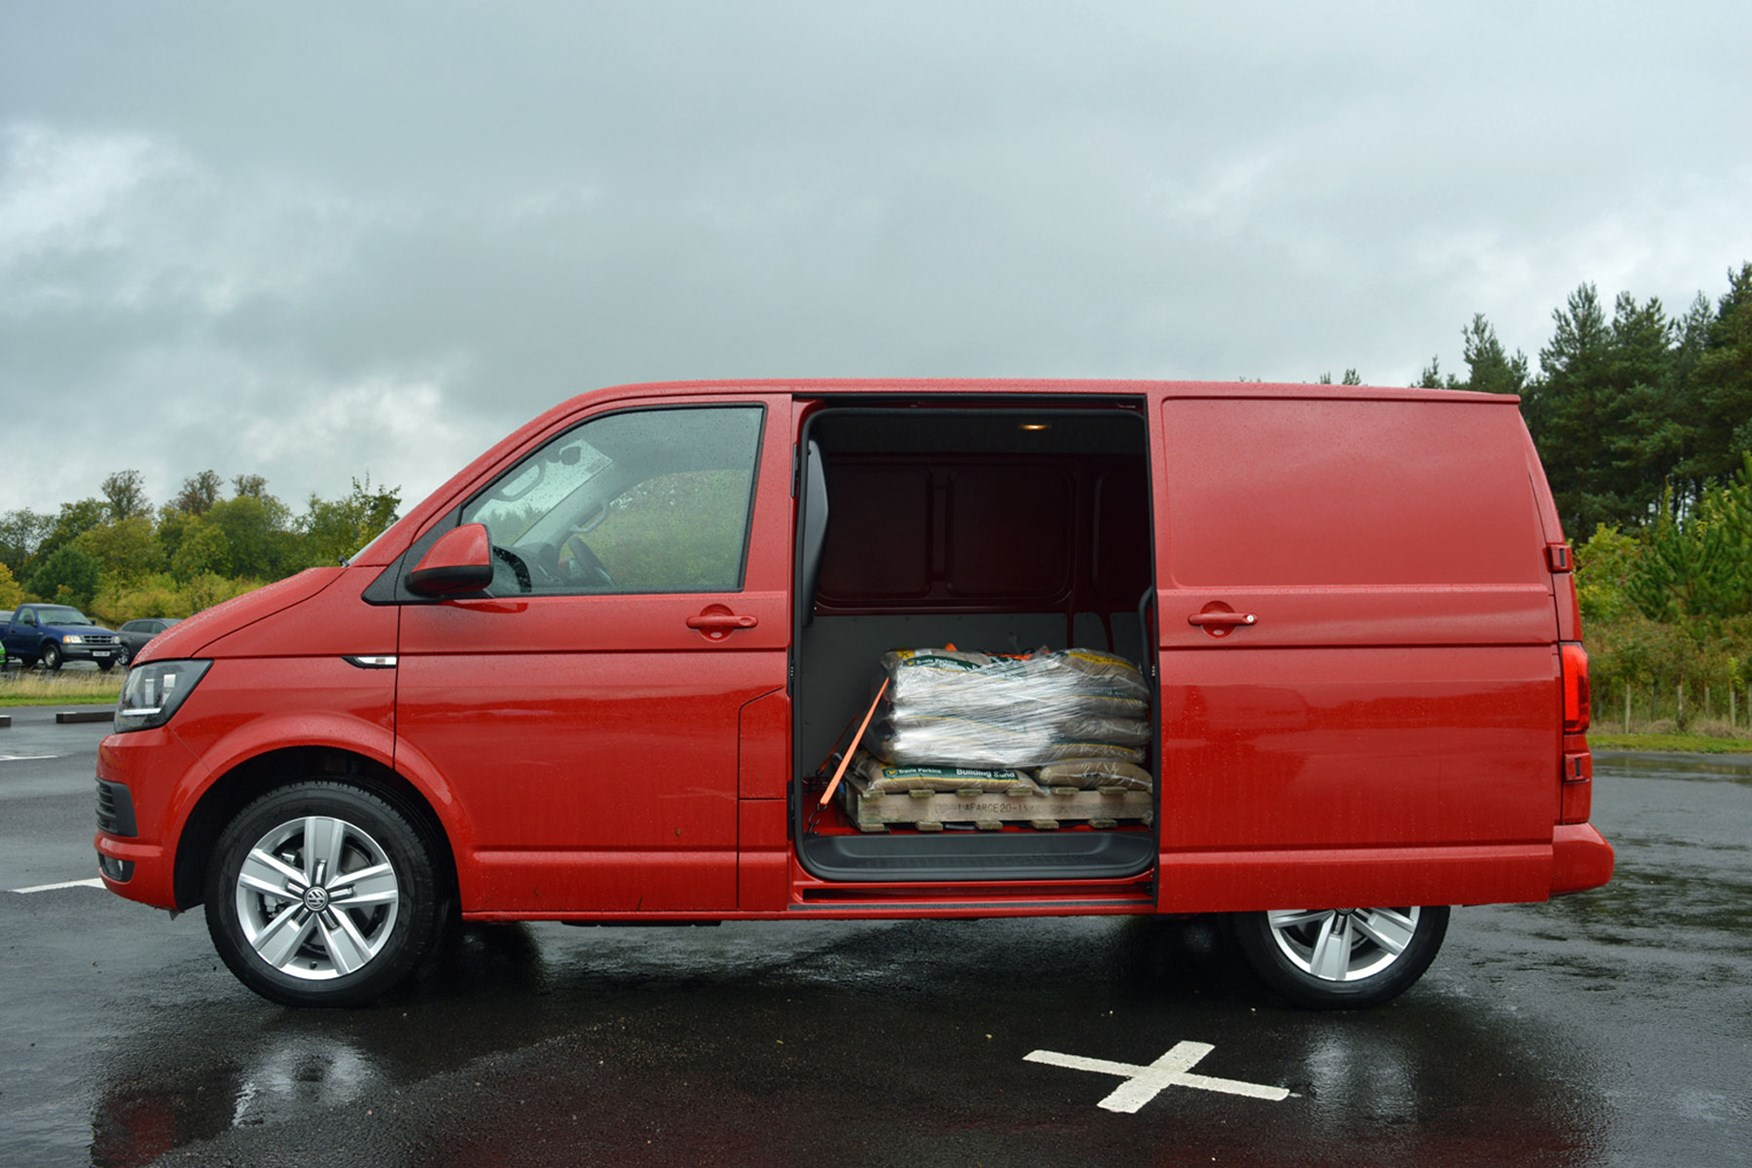 f13489a9a7d ... VW Transporter TDI 102 Highline review - red, side view, doors open, ...